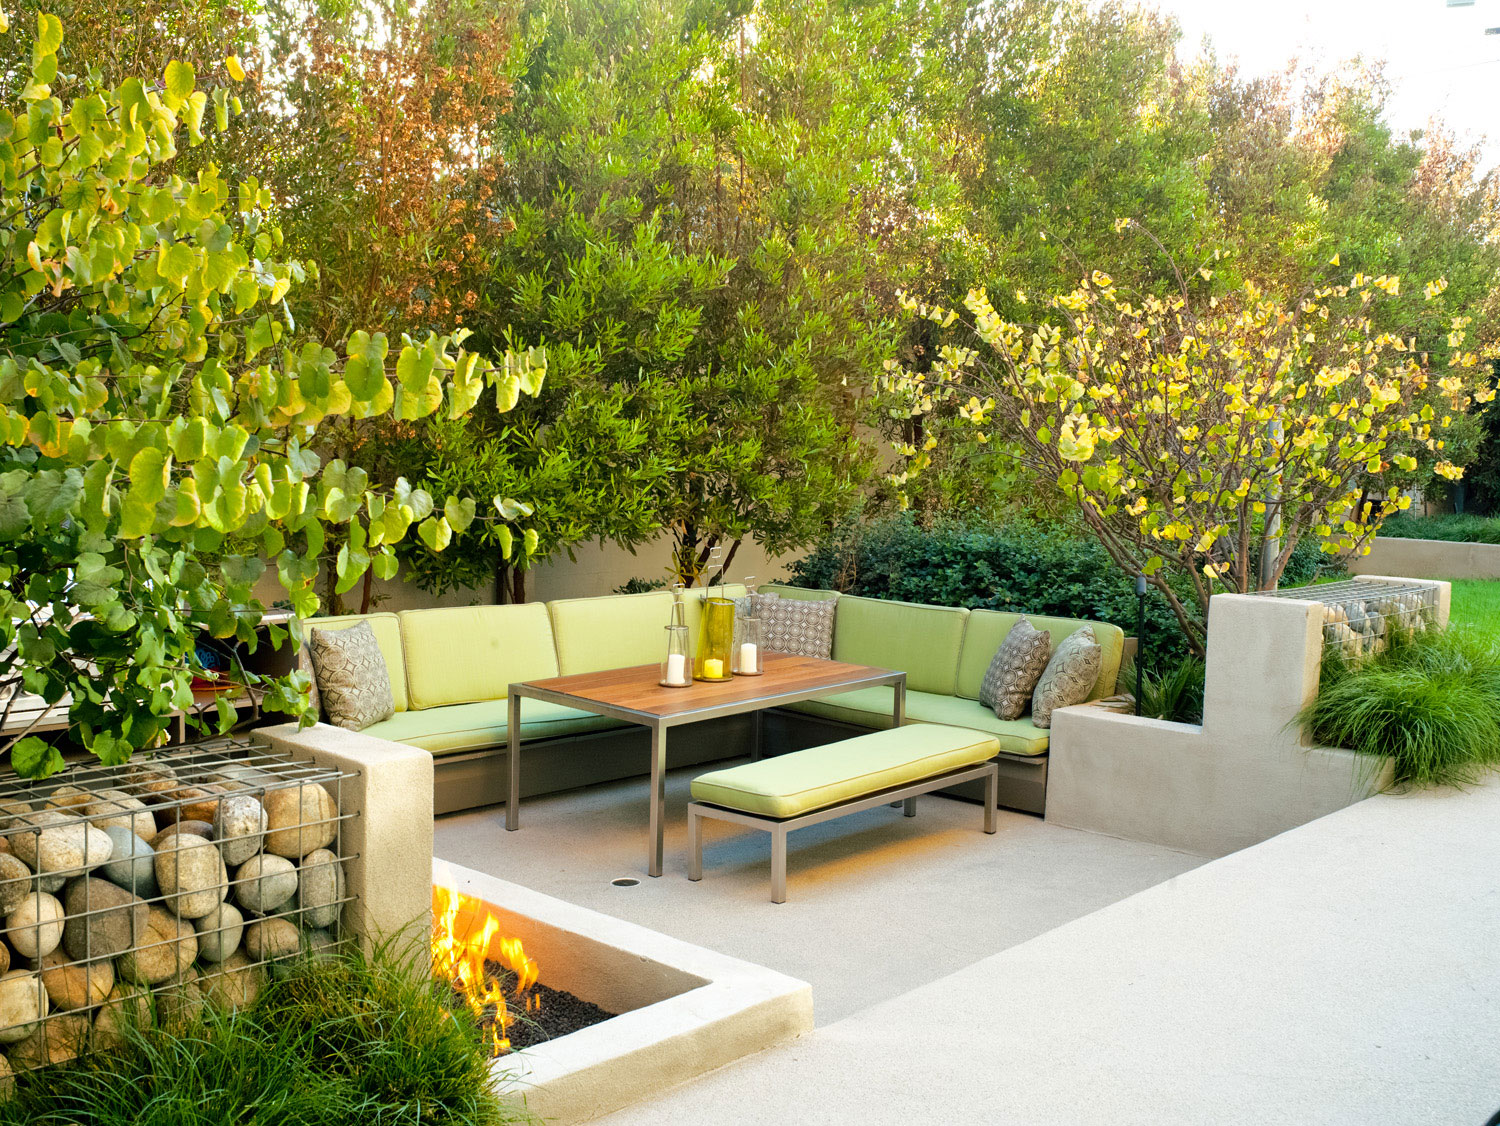 41 Ideas for Outdoor Dining Rooms - Sunset Magazine